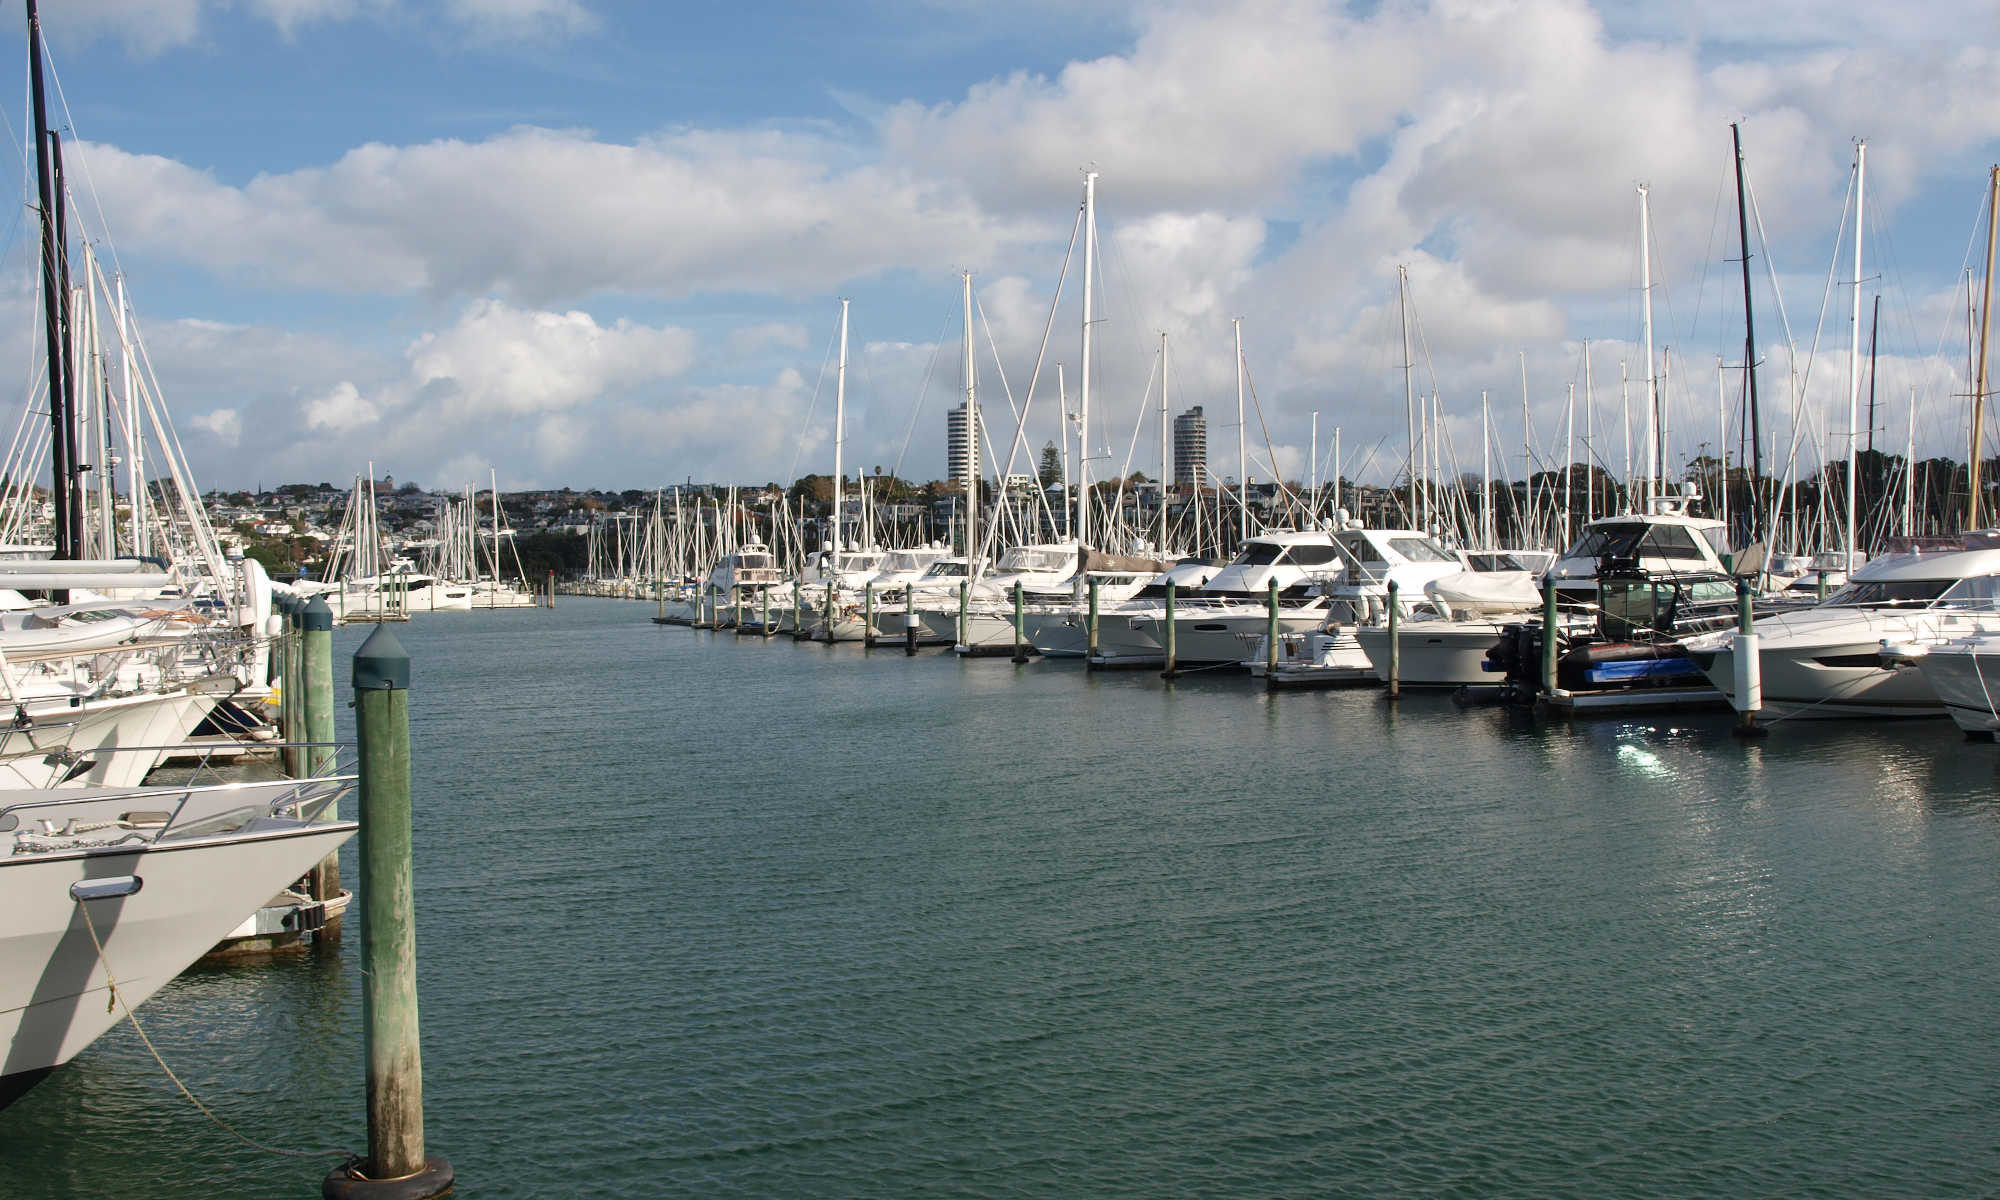 Westhaven Marina Users Association Inc